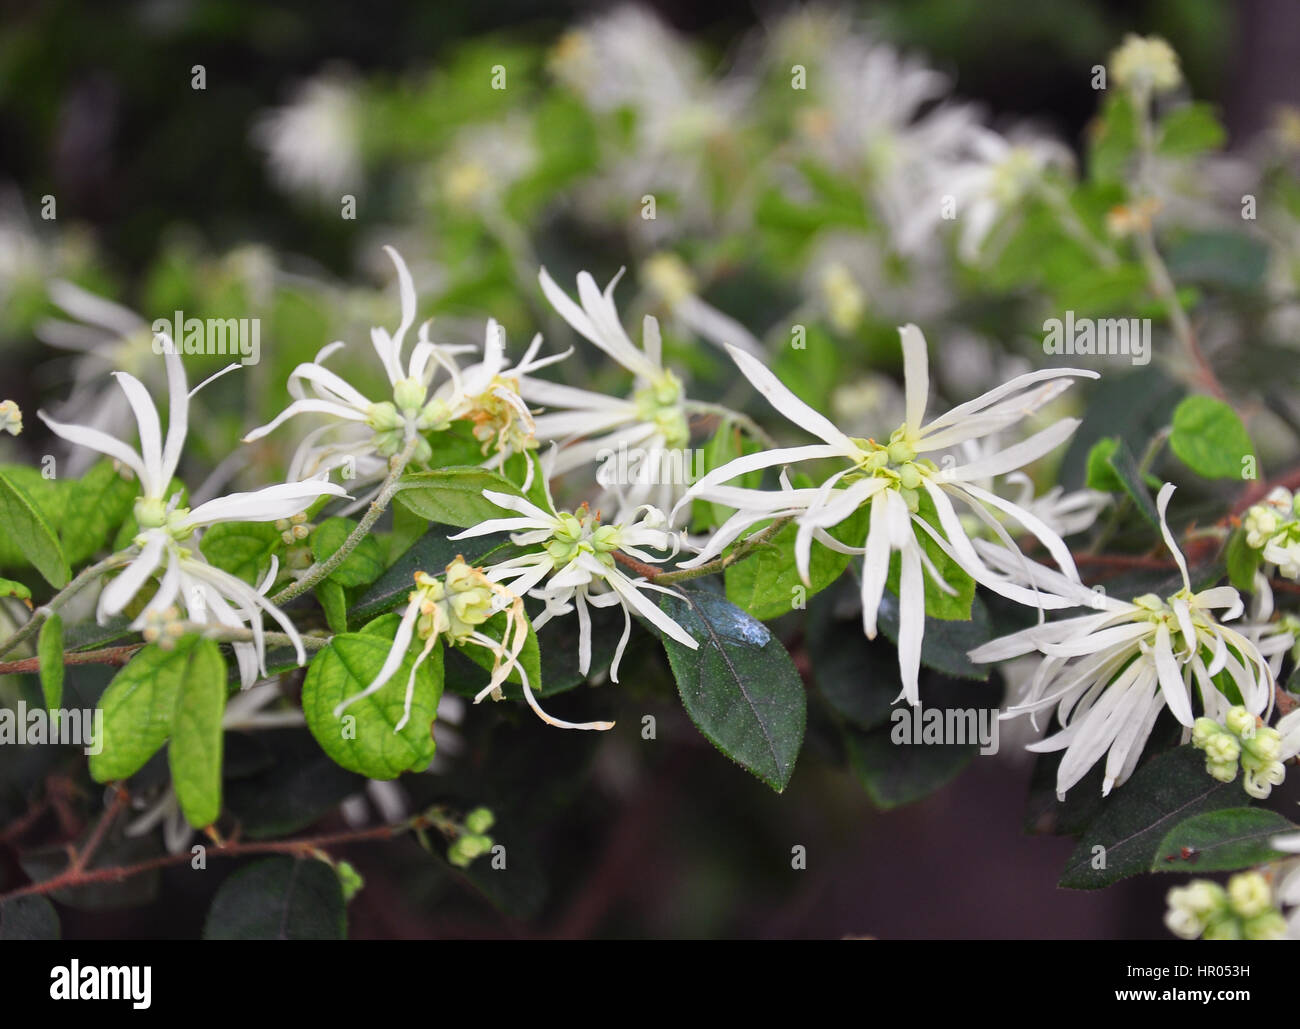 Fringe Flower Loropetalum Chinense Stock Photos Fringe Flower